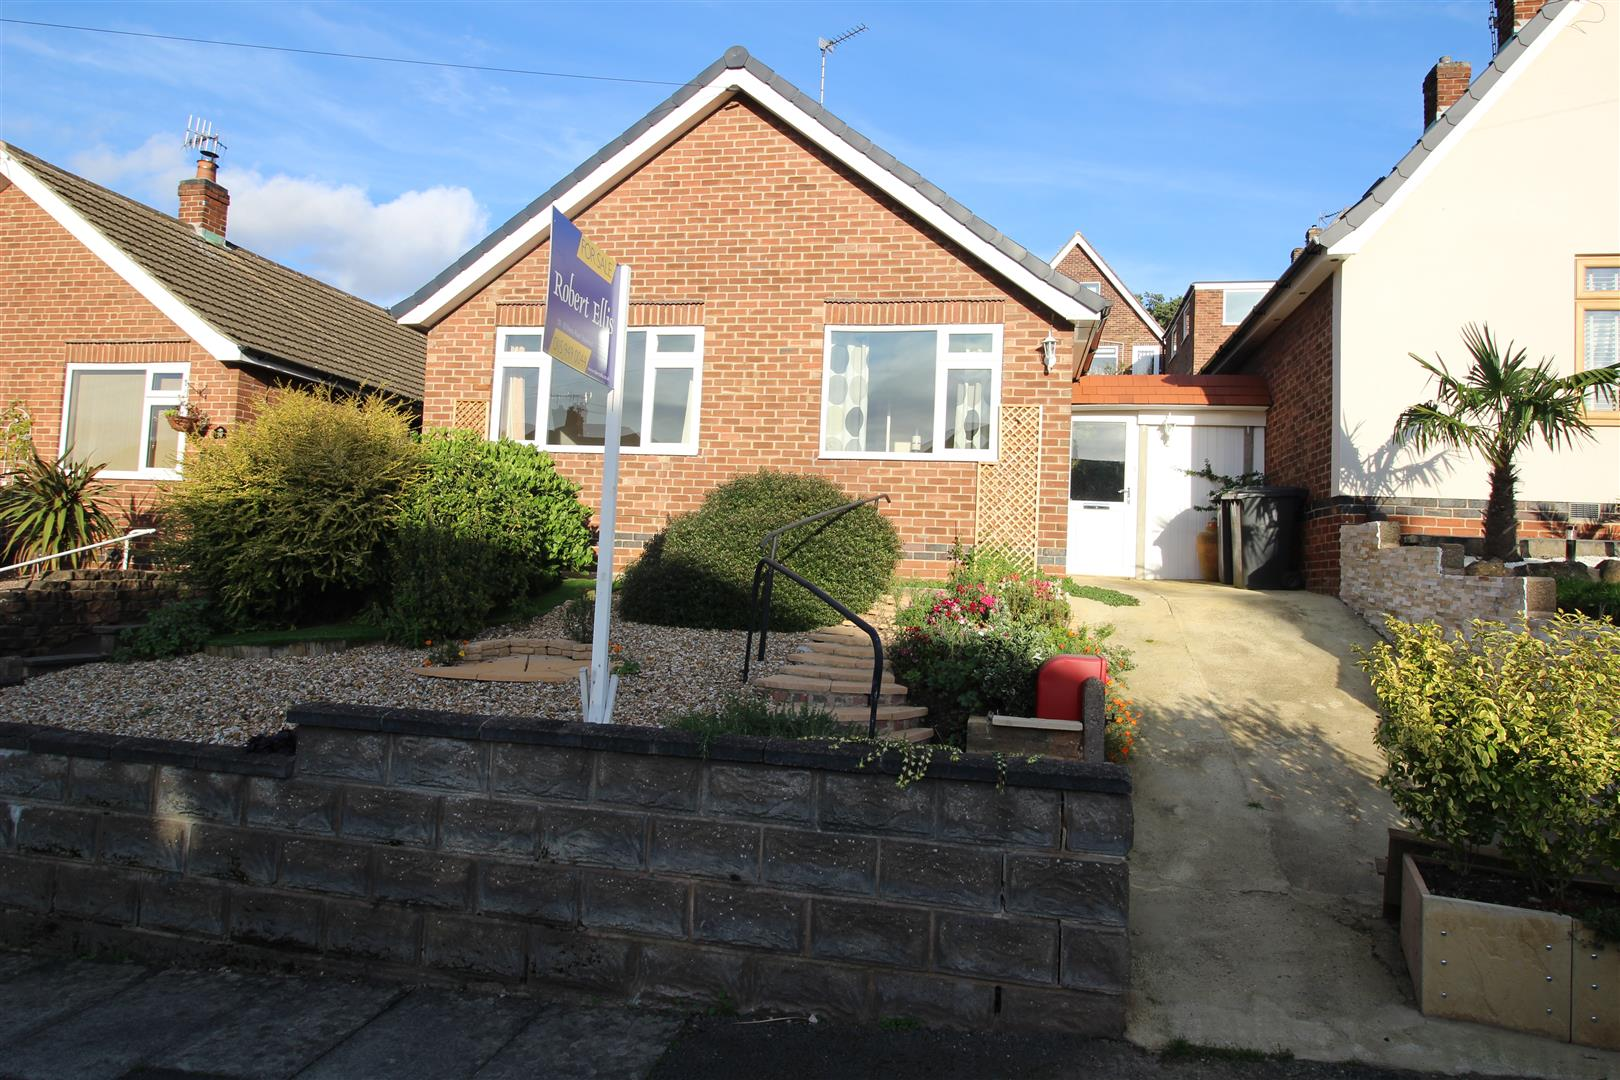 2 Bedrooms Detached Bungalow for sale in Trevone Avenue, Stapleford